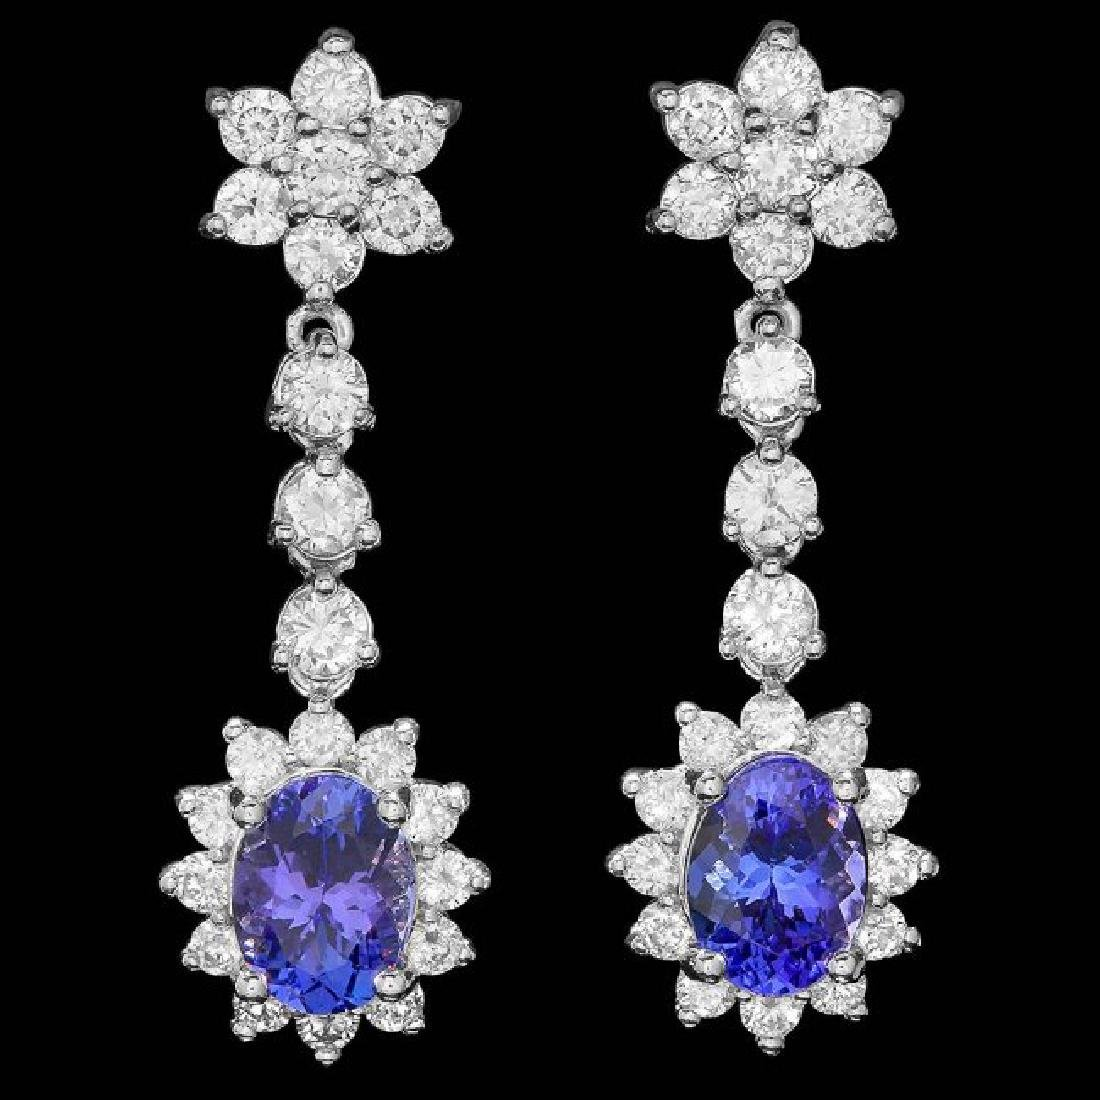 14k Gold 3.00ct Tanzanite 2.20ct Diamond Earrings